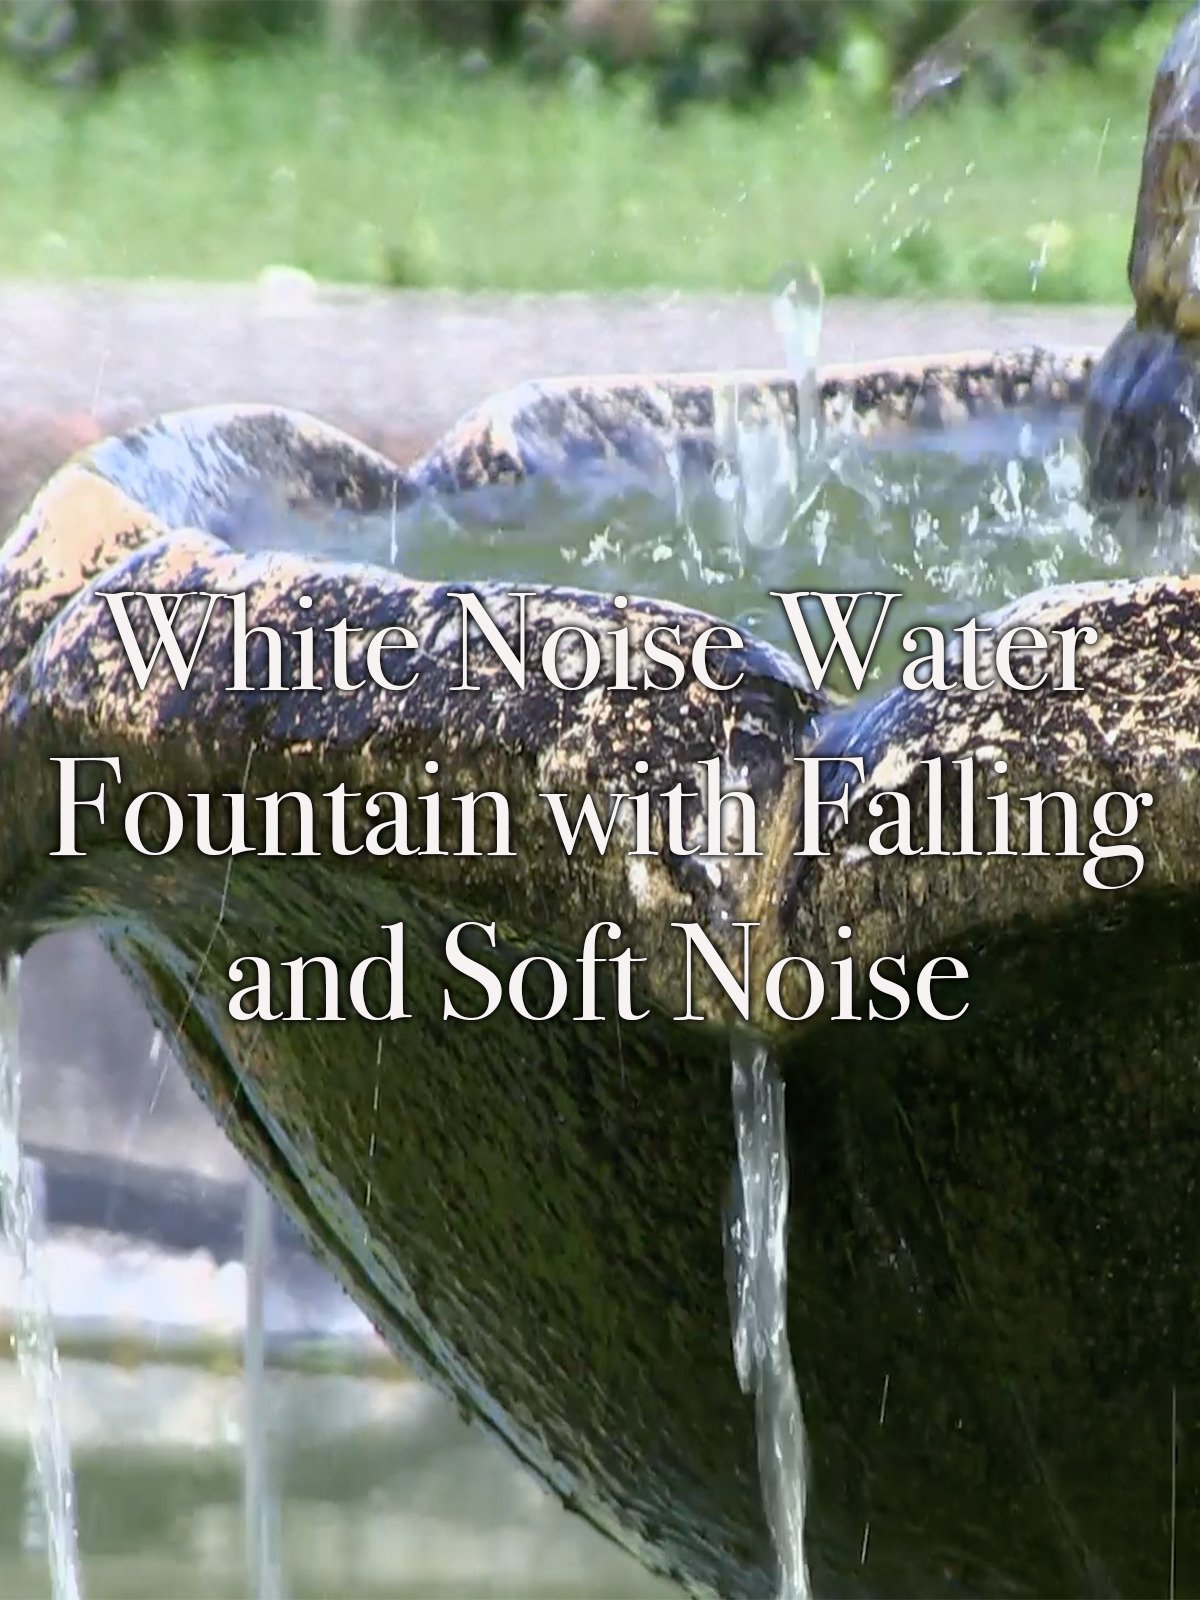 White Noise Water Fountain with Falling Water and Soft Noise